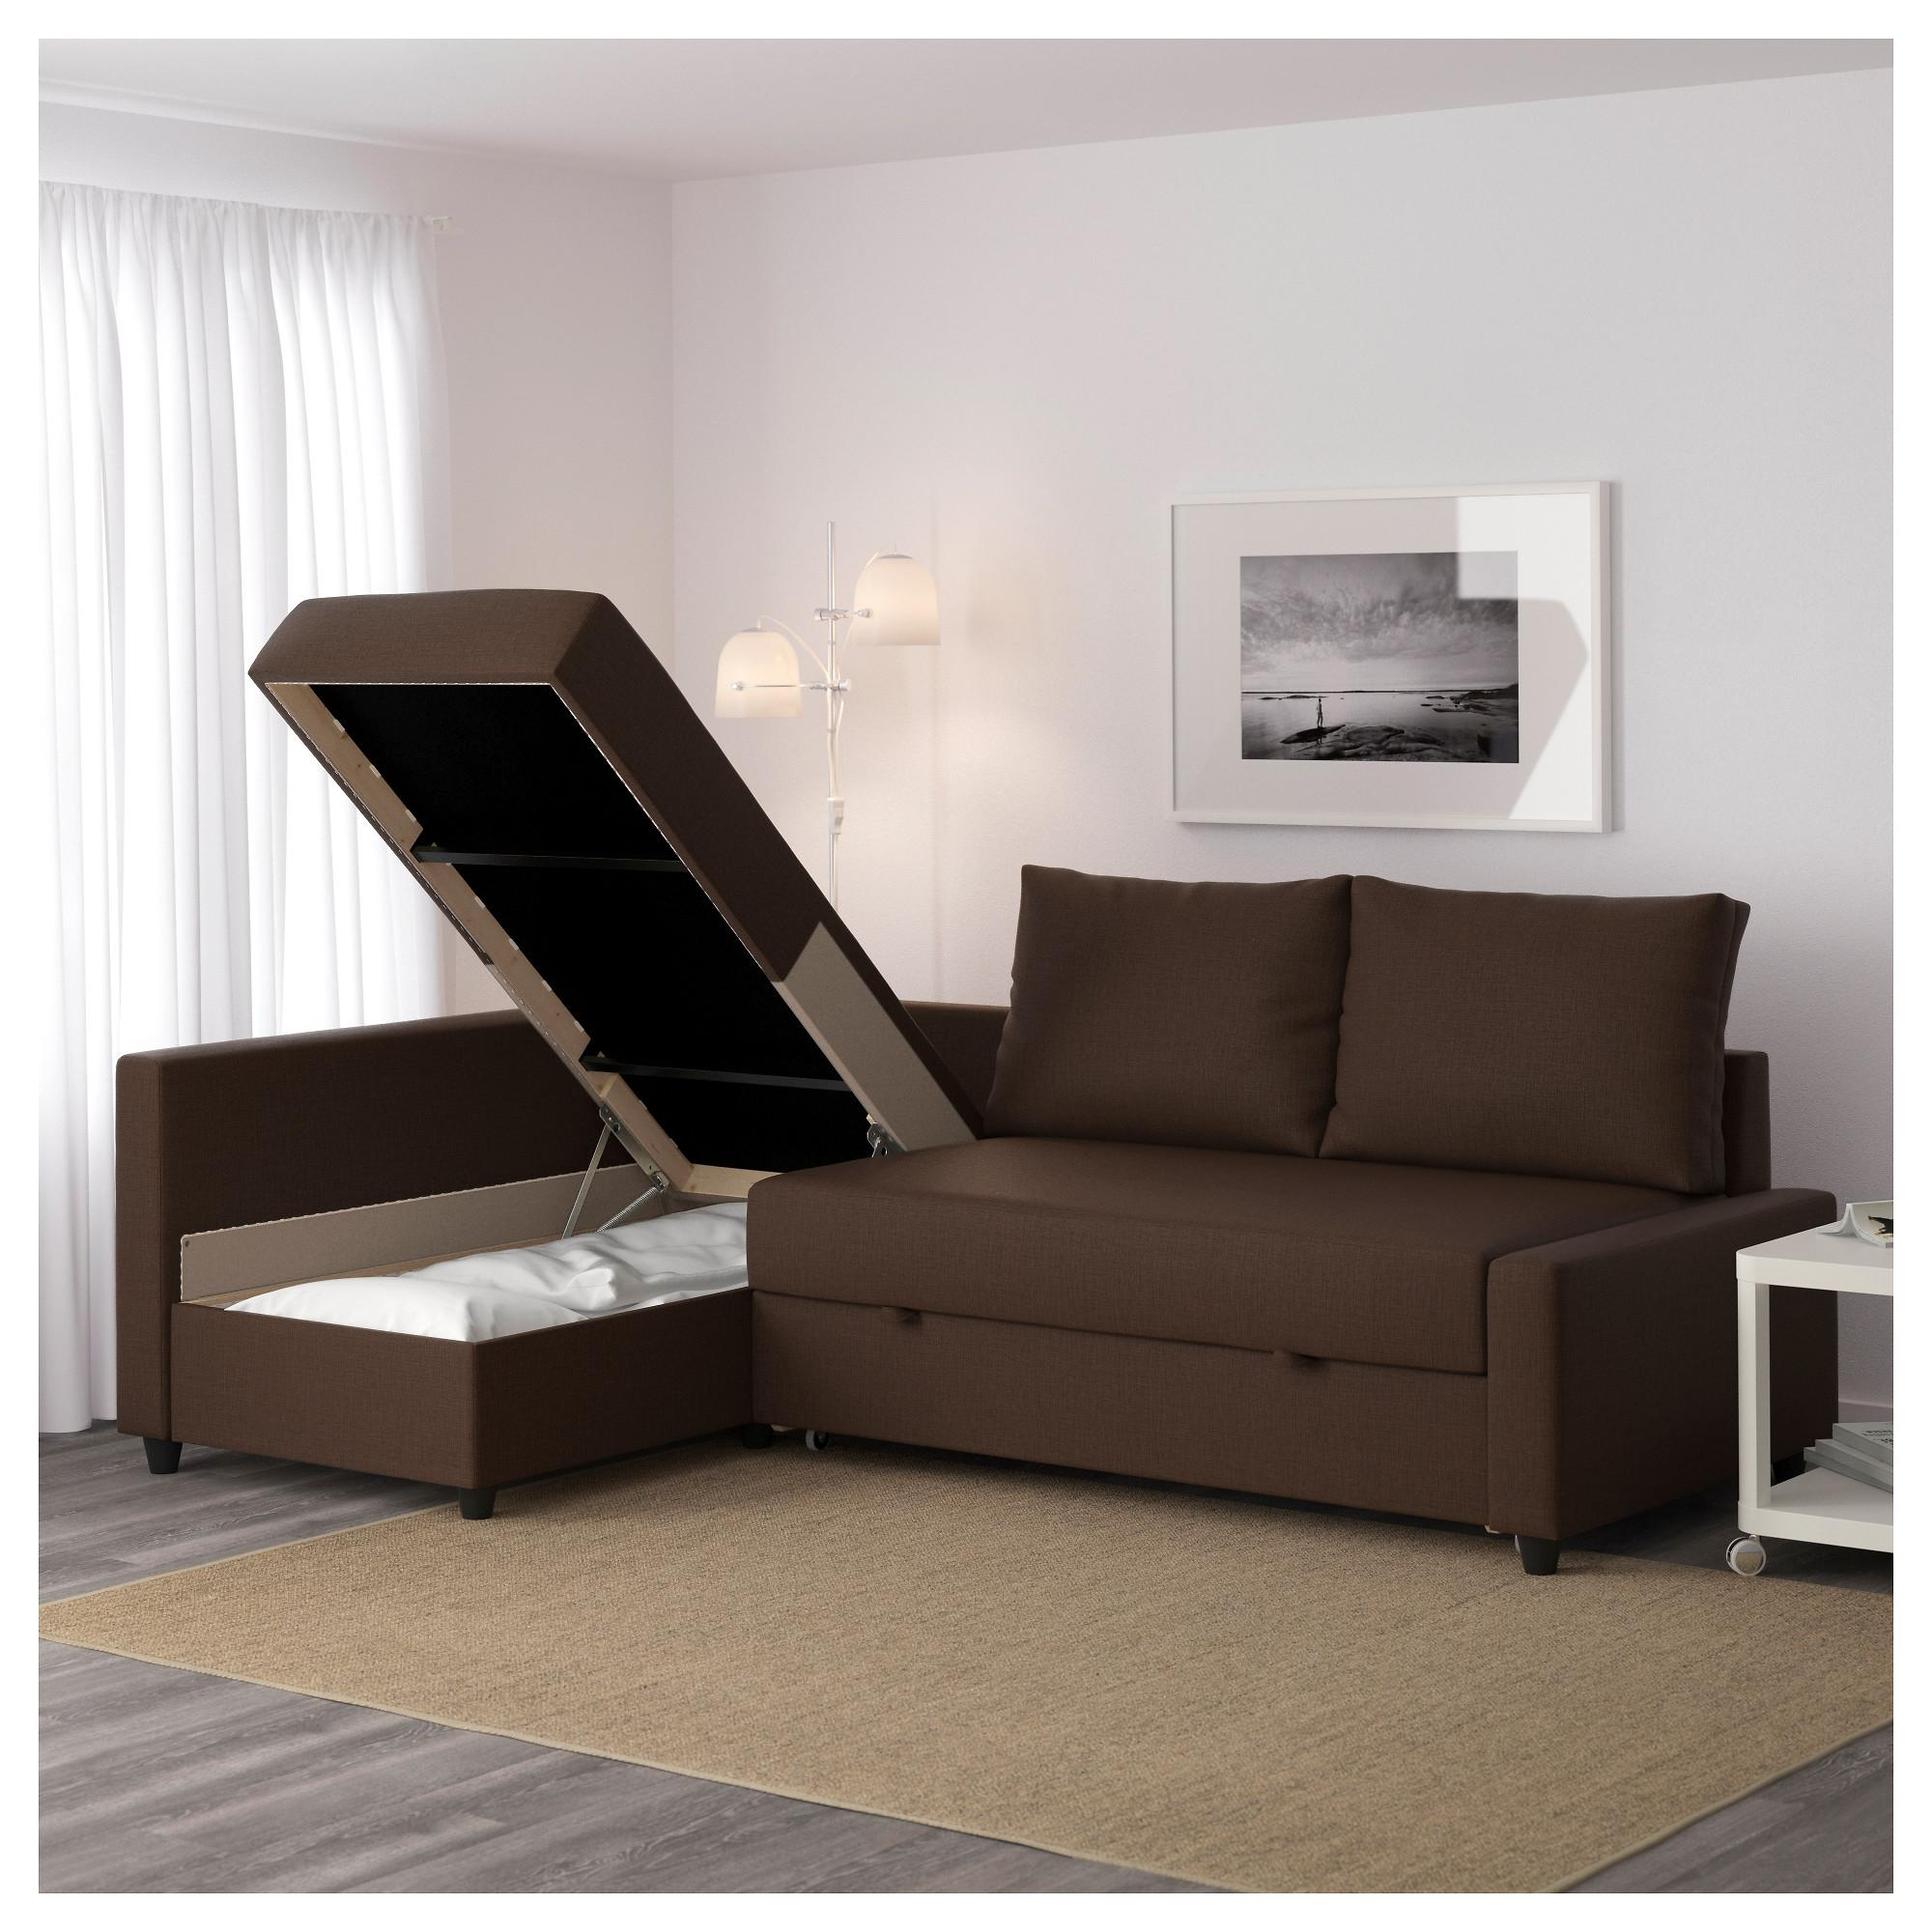 Furniture: Ikea Kivik Sofa Bed | Ikea Sofa Beds | Ikea Leather Intended For Leather Sofa Beds With Storage (Image 10 of 20)